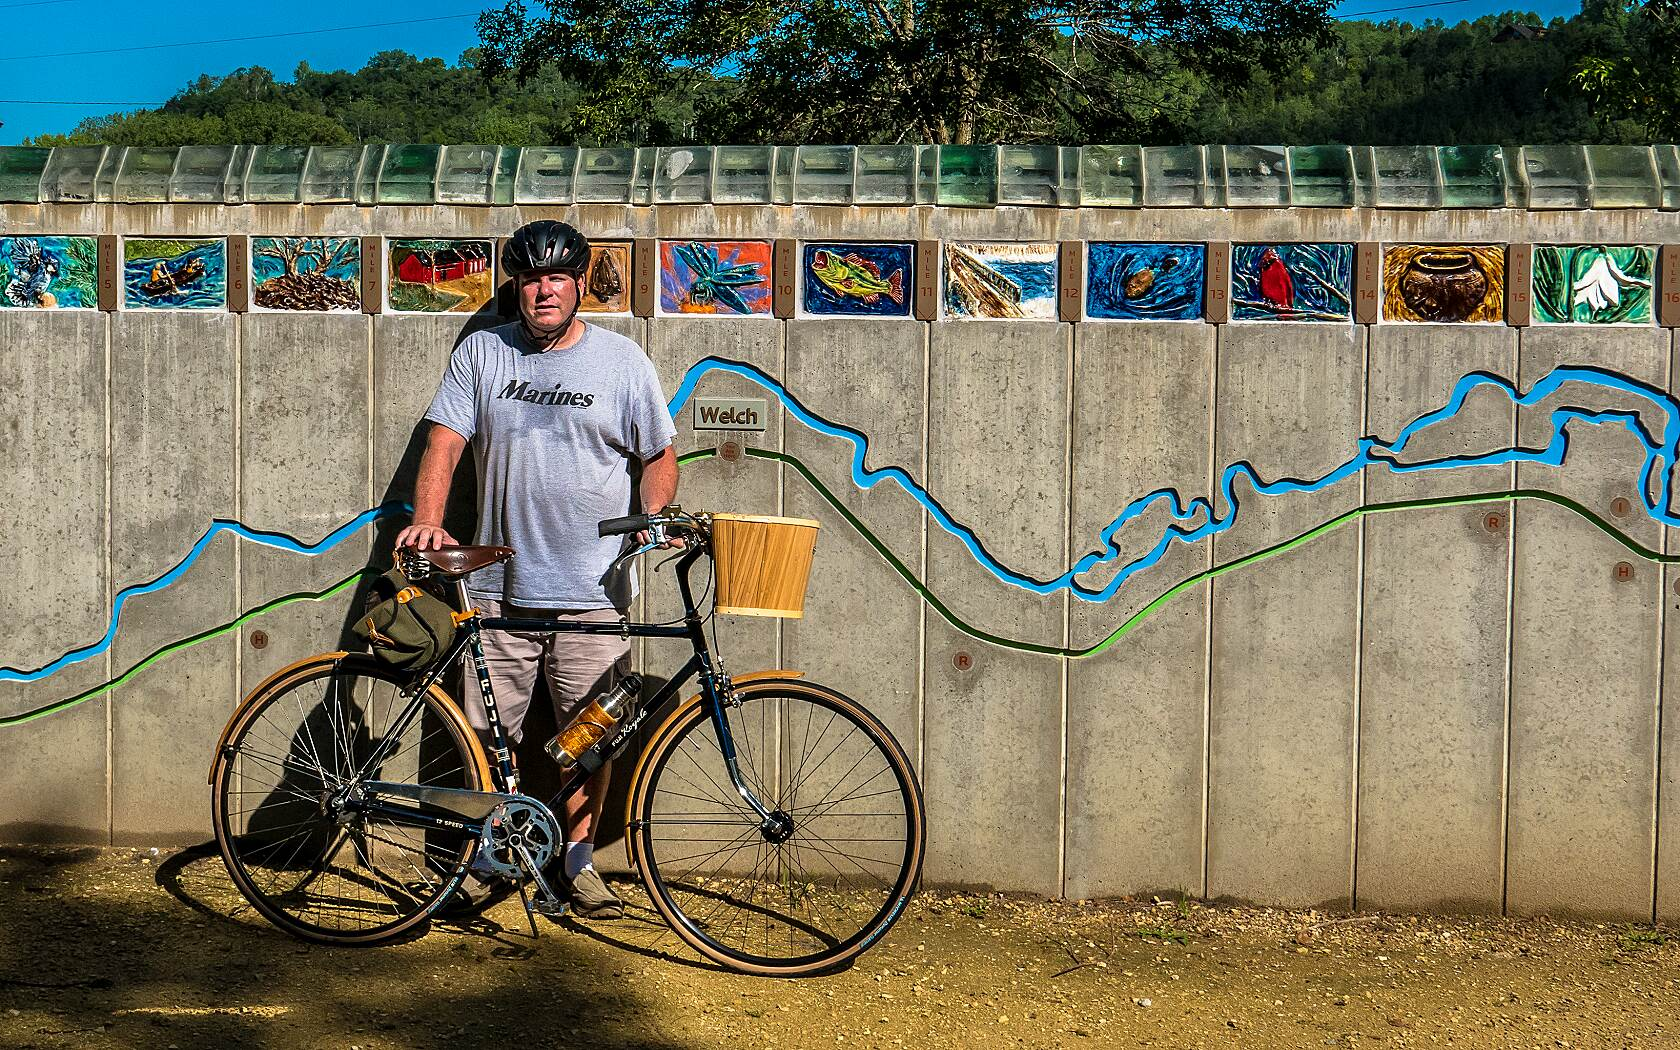 Cannon Valley Trail One Happy Marine One of the trail attendants at Welch Station was kind enough to take this photo of me with my bike in front of the beautiful 'map wall' display.